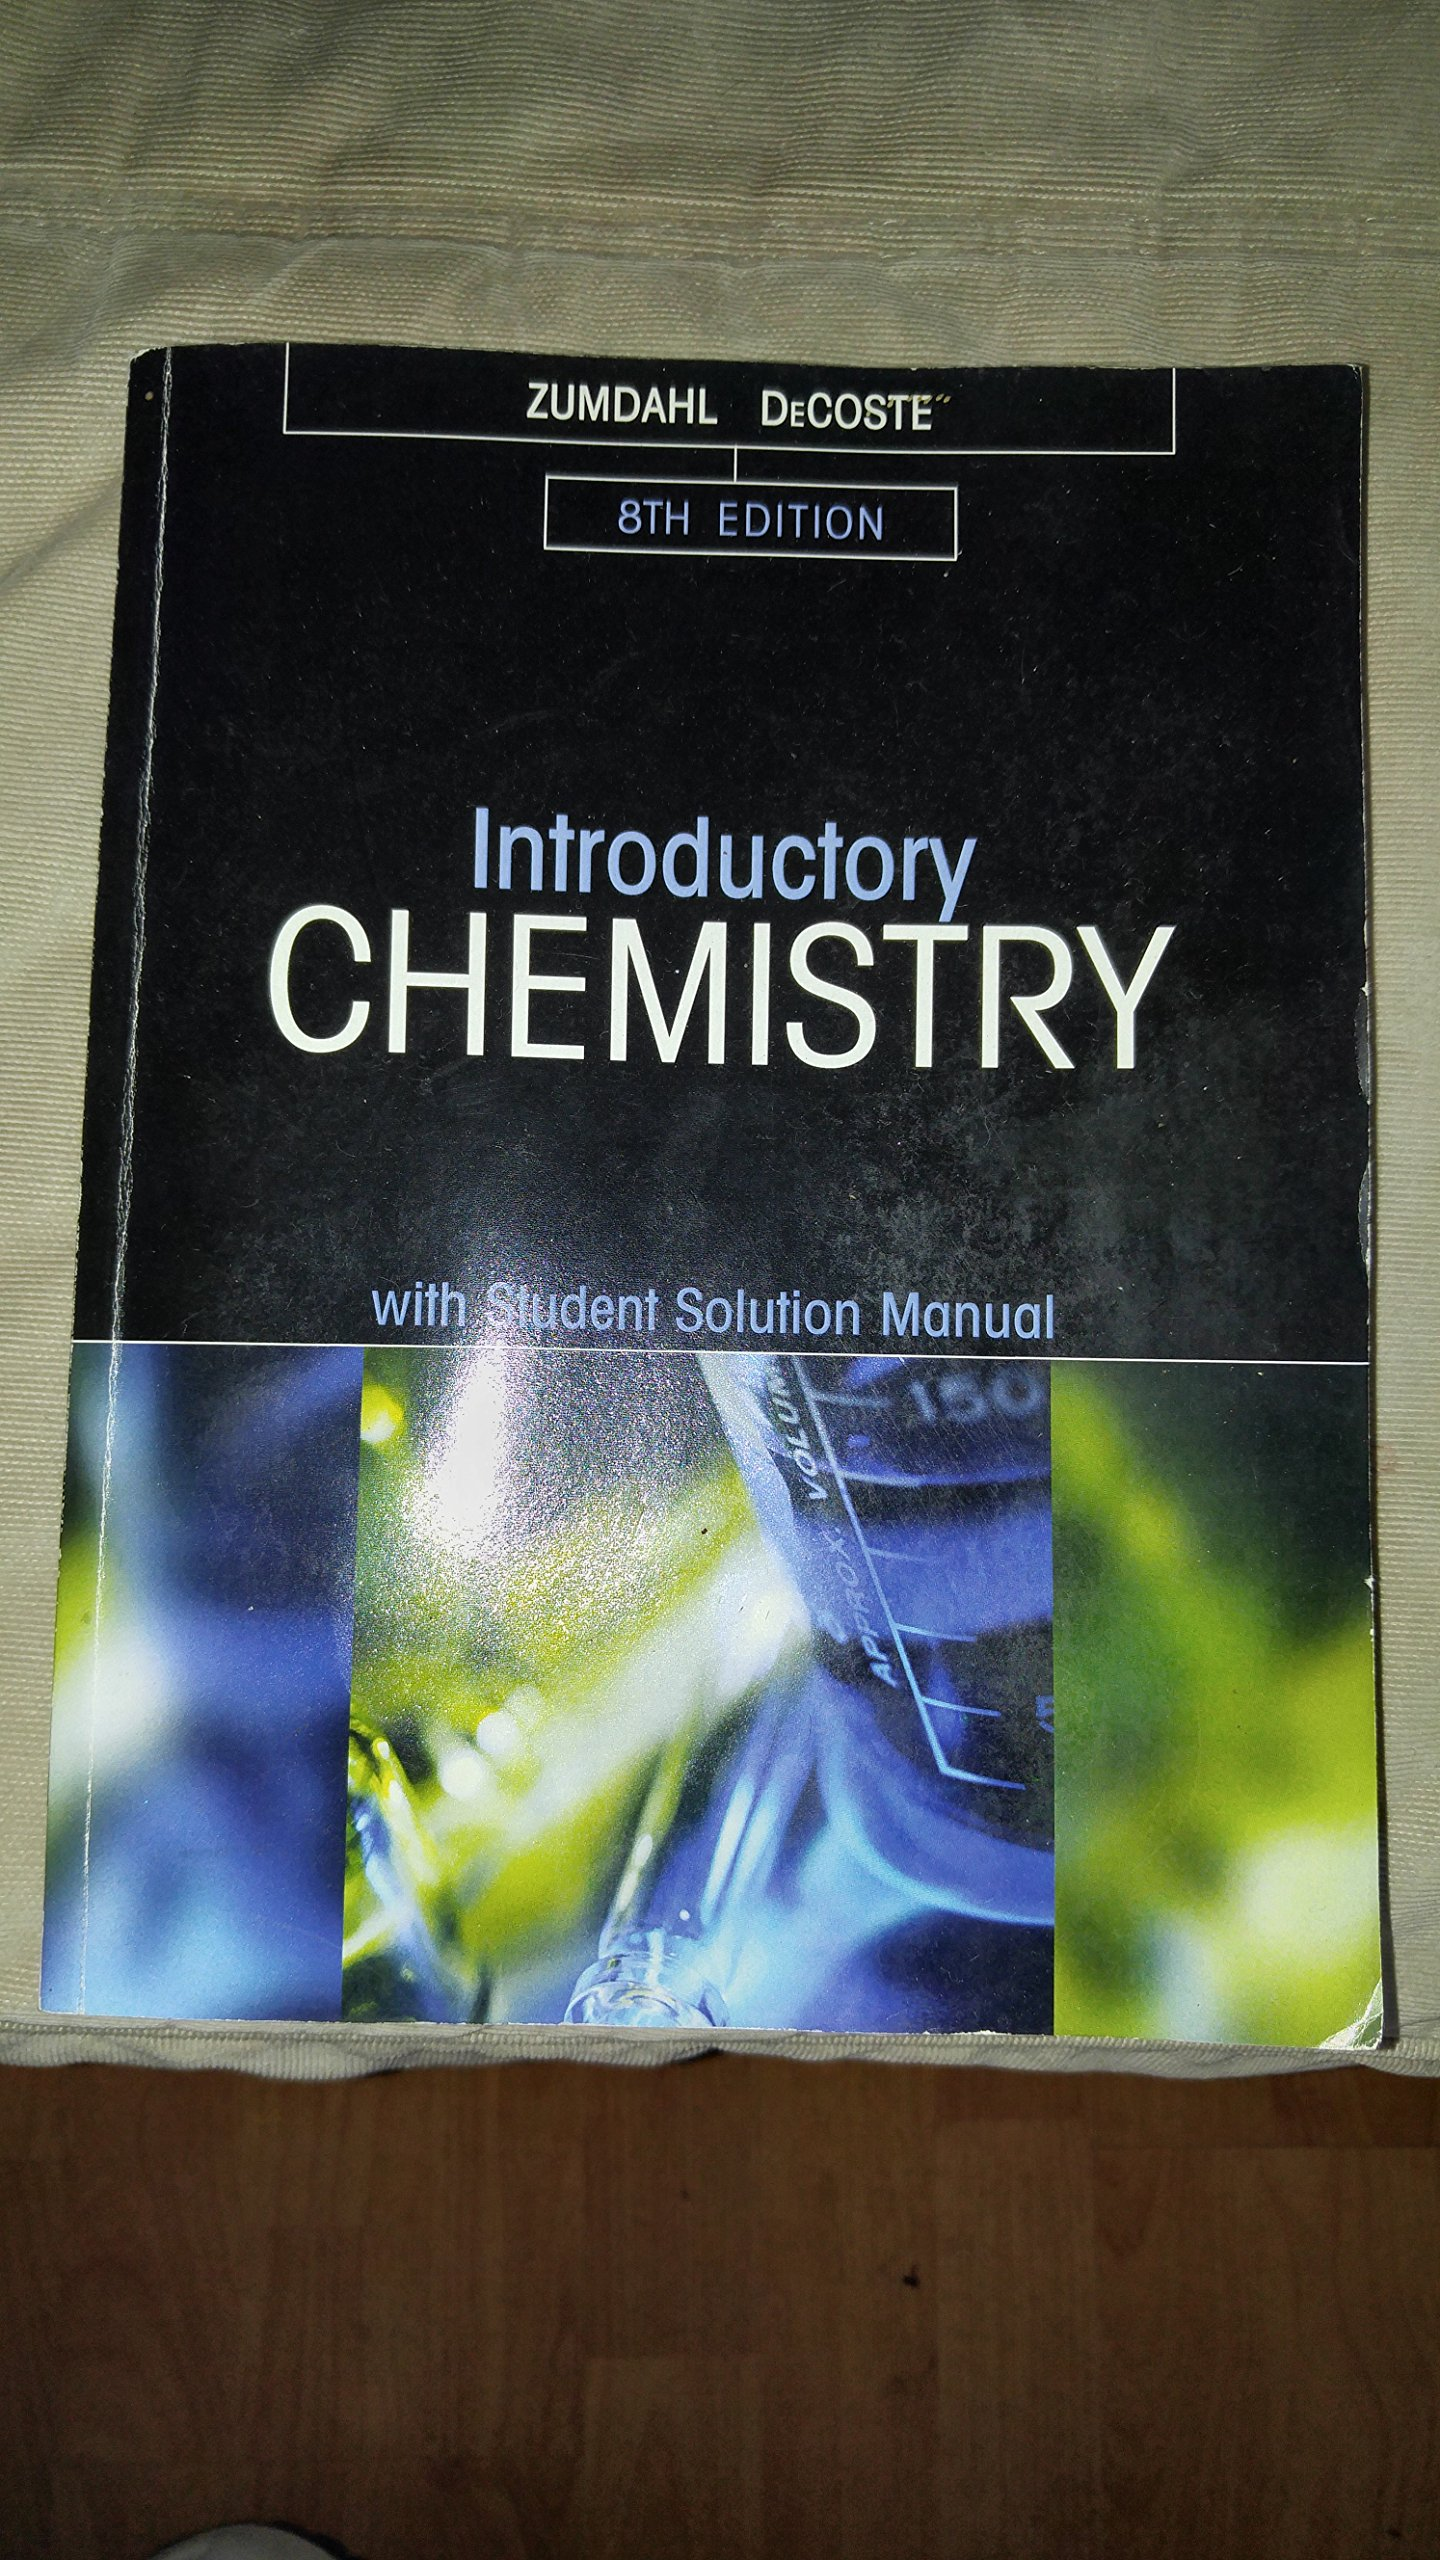 Introductory Chemistry with Student Solution Manual 8th Edition: Zumdahl,  DeCoste: 9781305282063: Amazon.com: Books